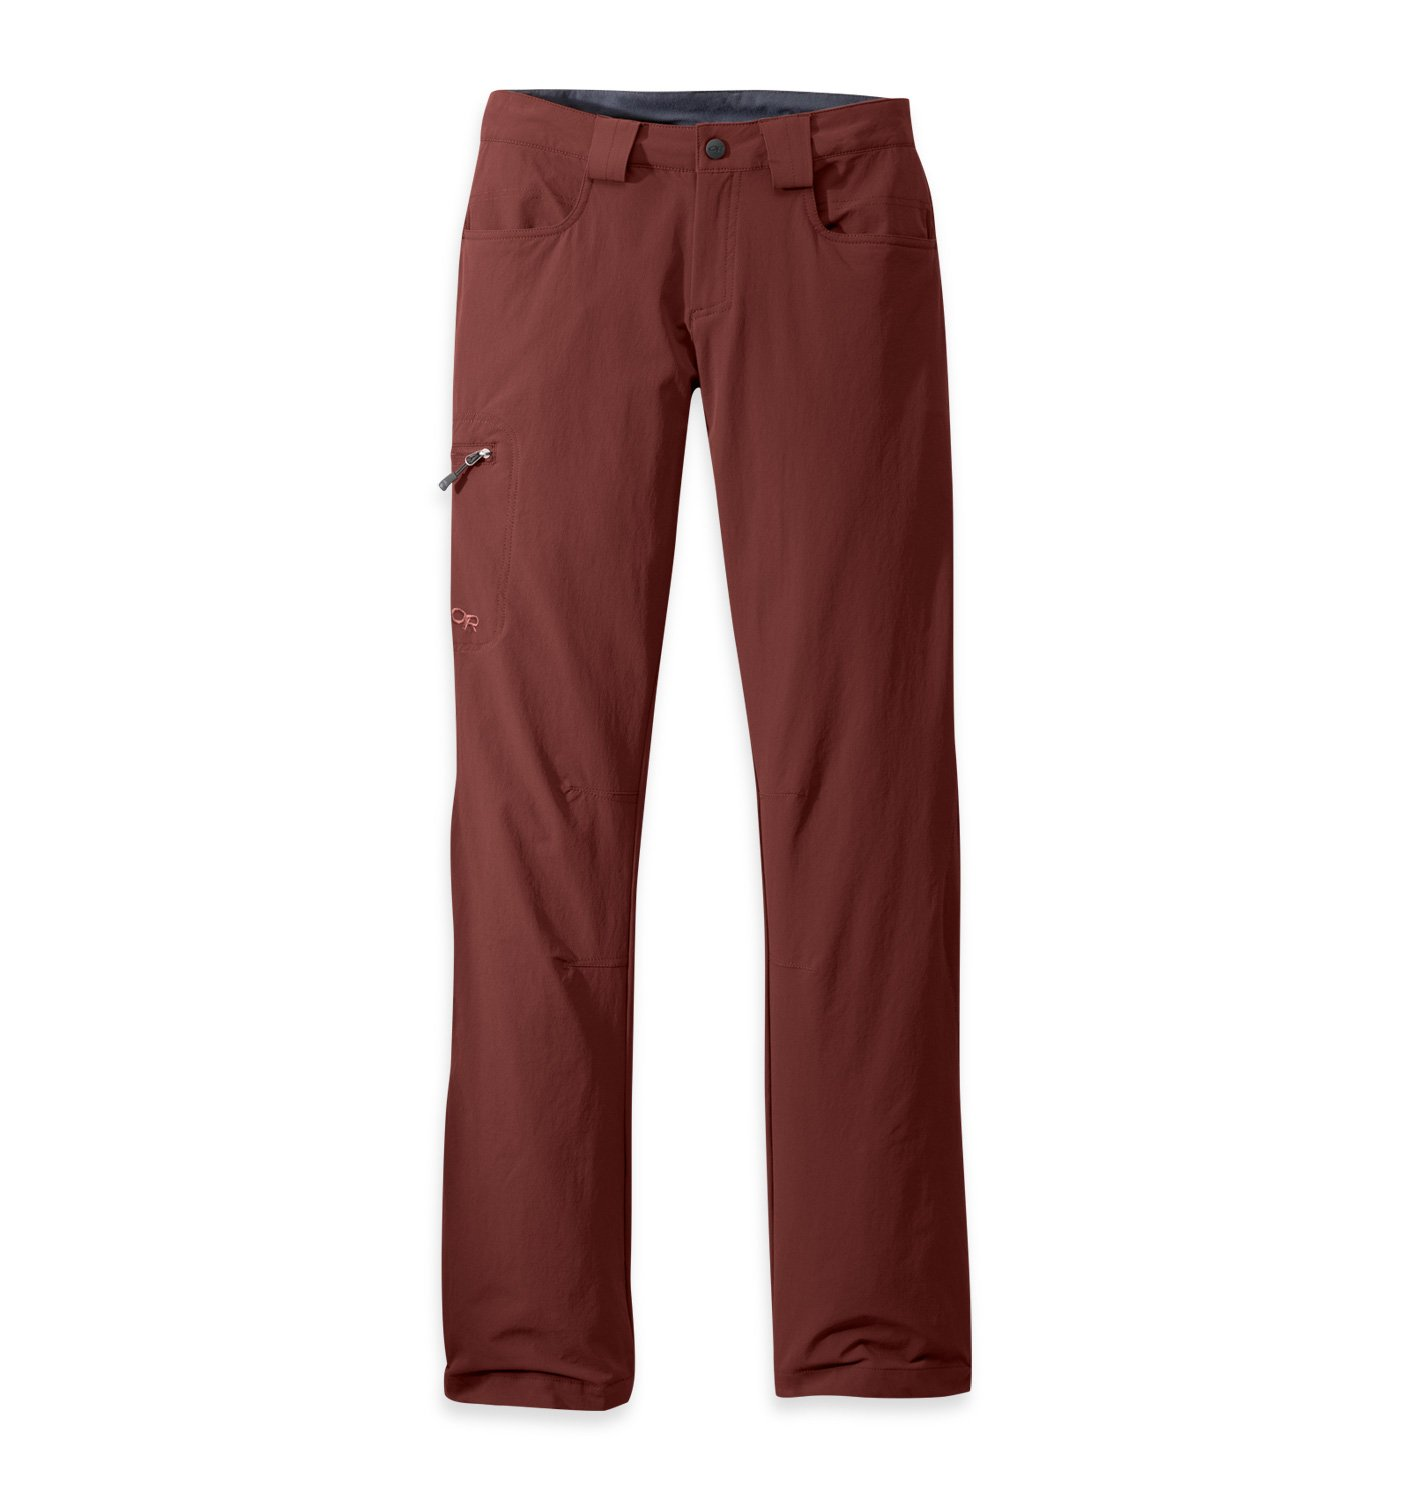 Outdoor Research Women's Voodoo Pants, Tikka, 4 by Outdoor Research